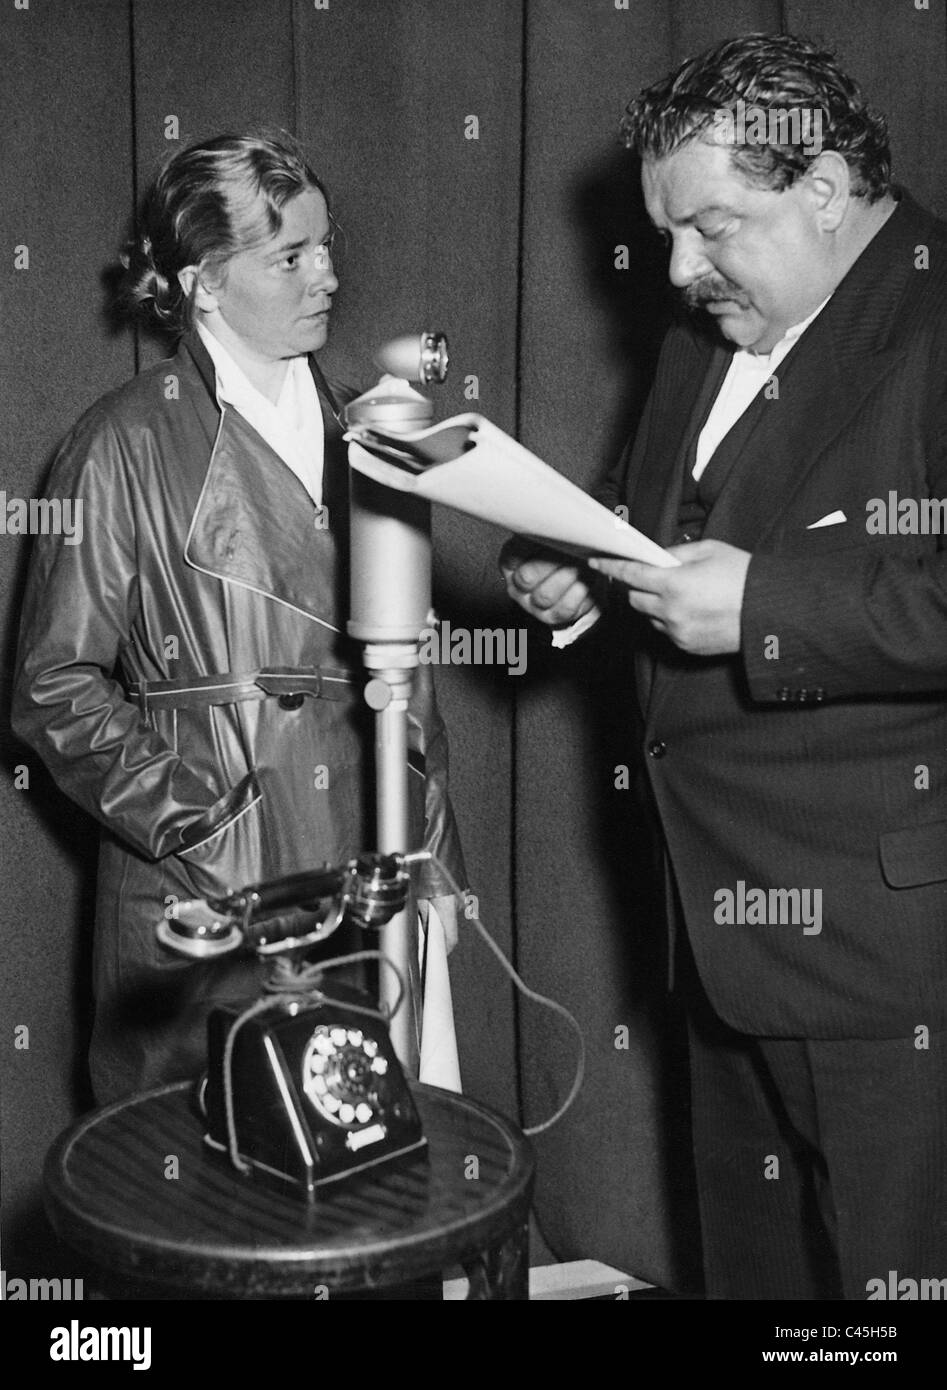 Heinrich George with Franziska Hinz at a radio play recording, 1933 - Stock Image